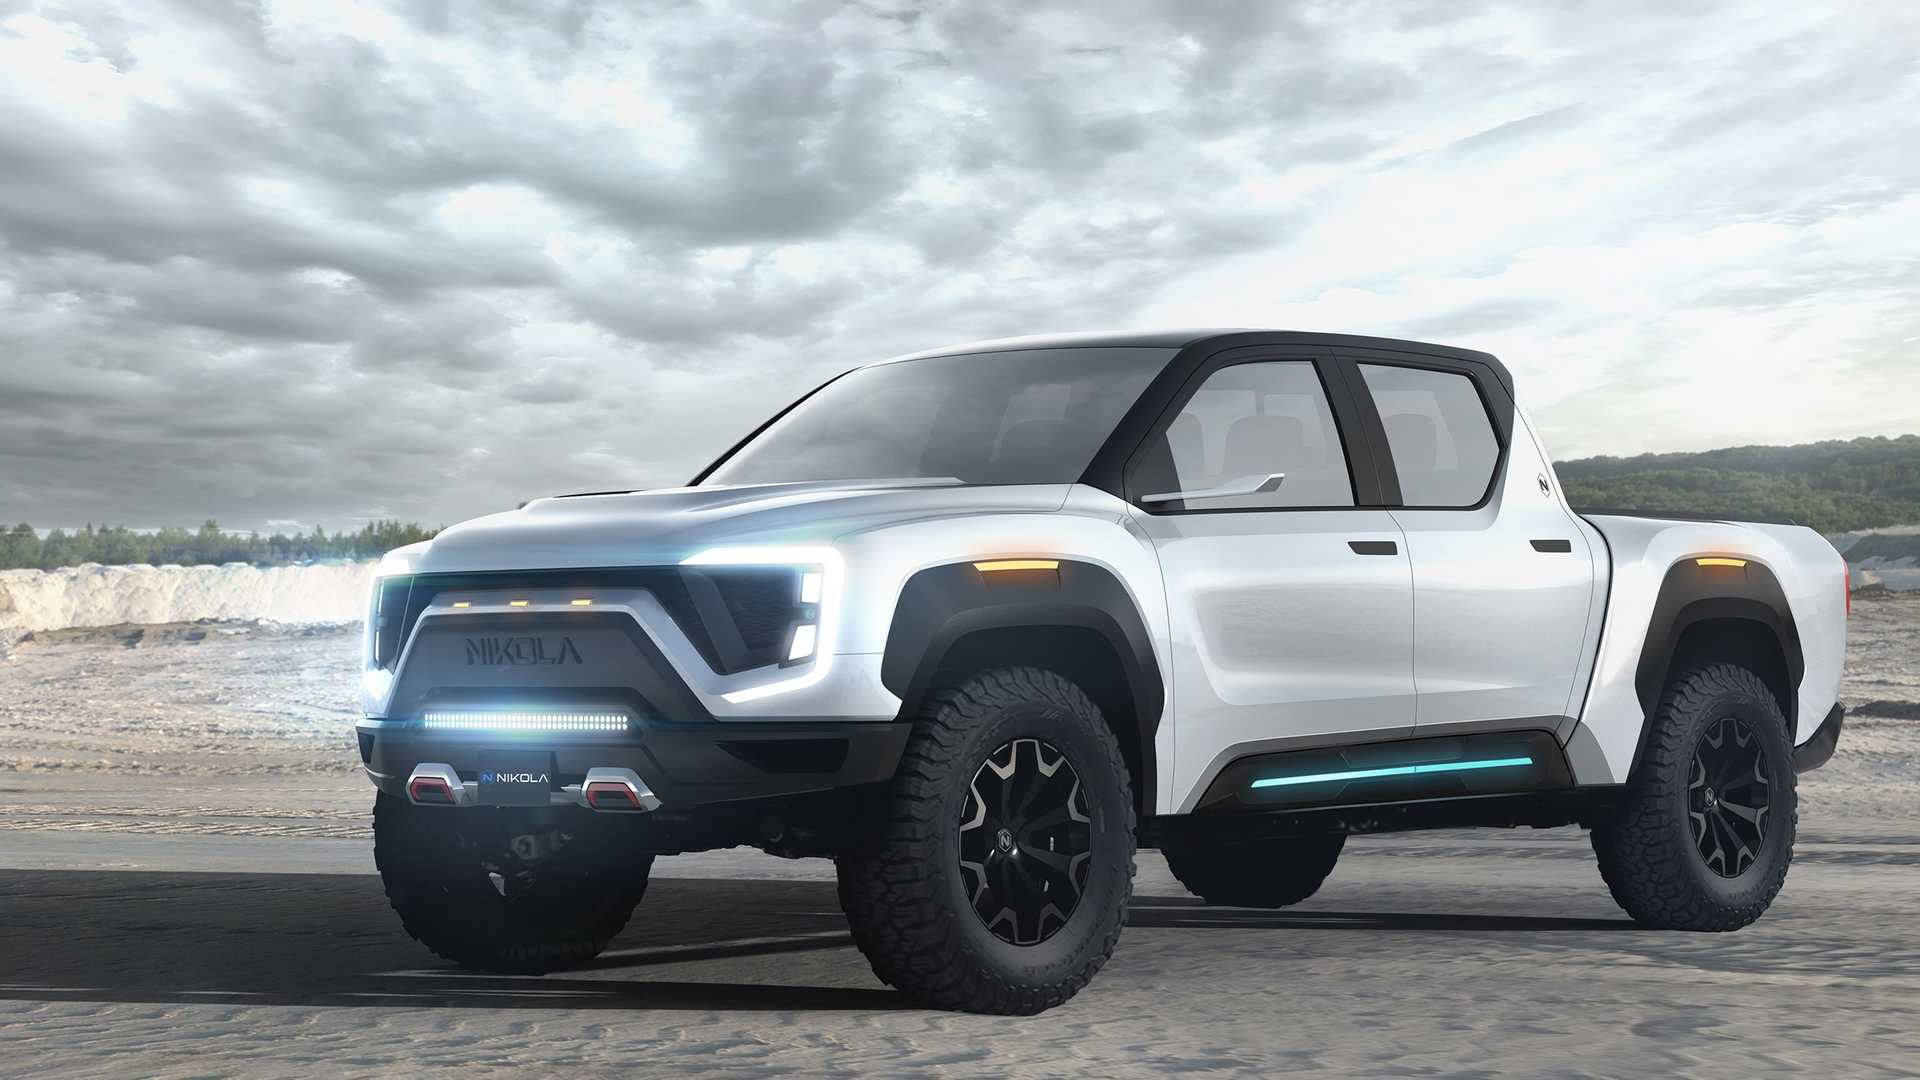 High On Hydrogen: Will Nikola Prove To Live Up To The Hype?